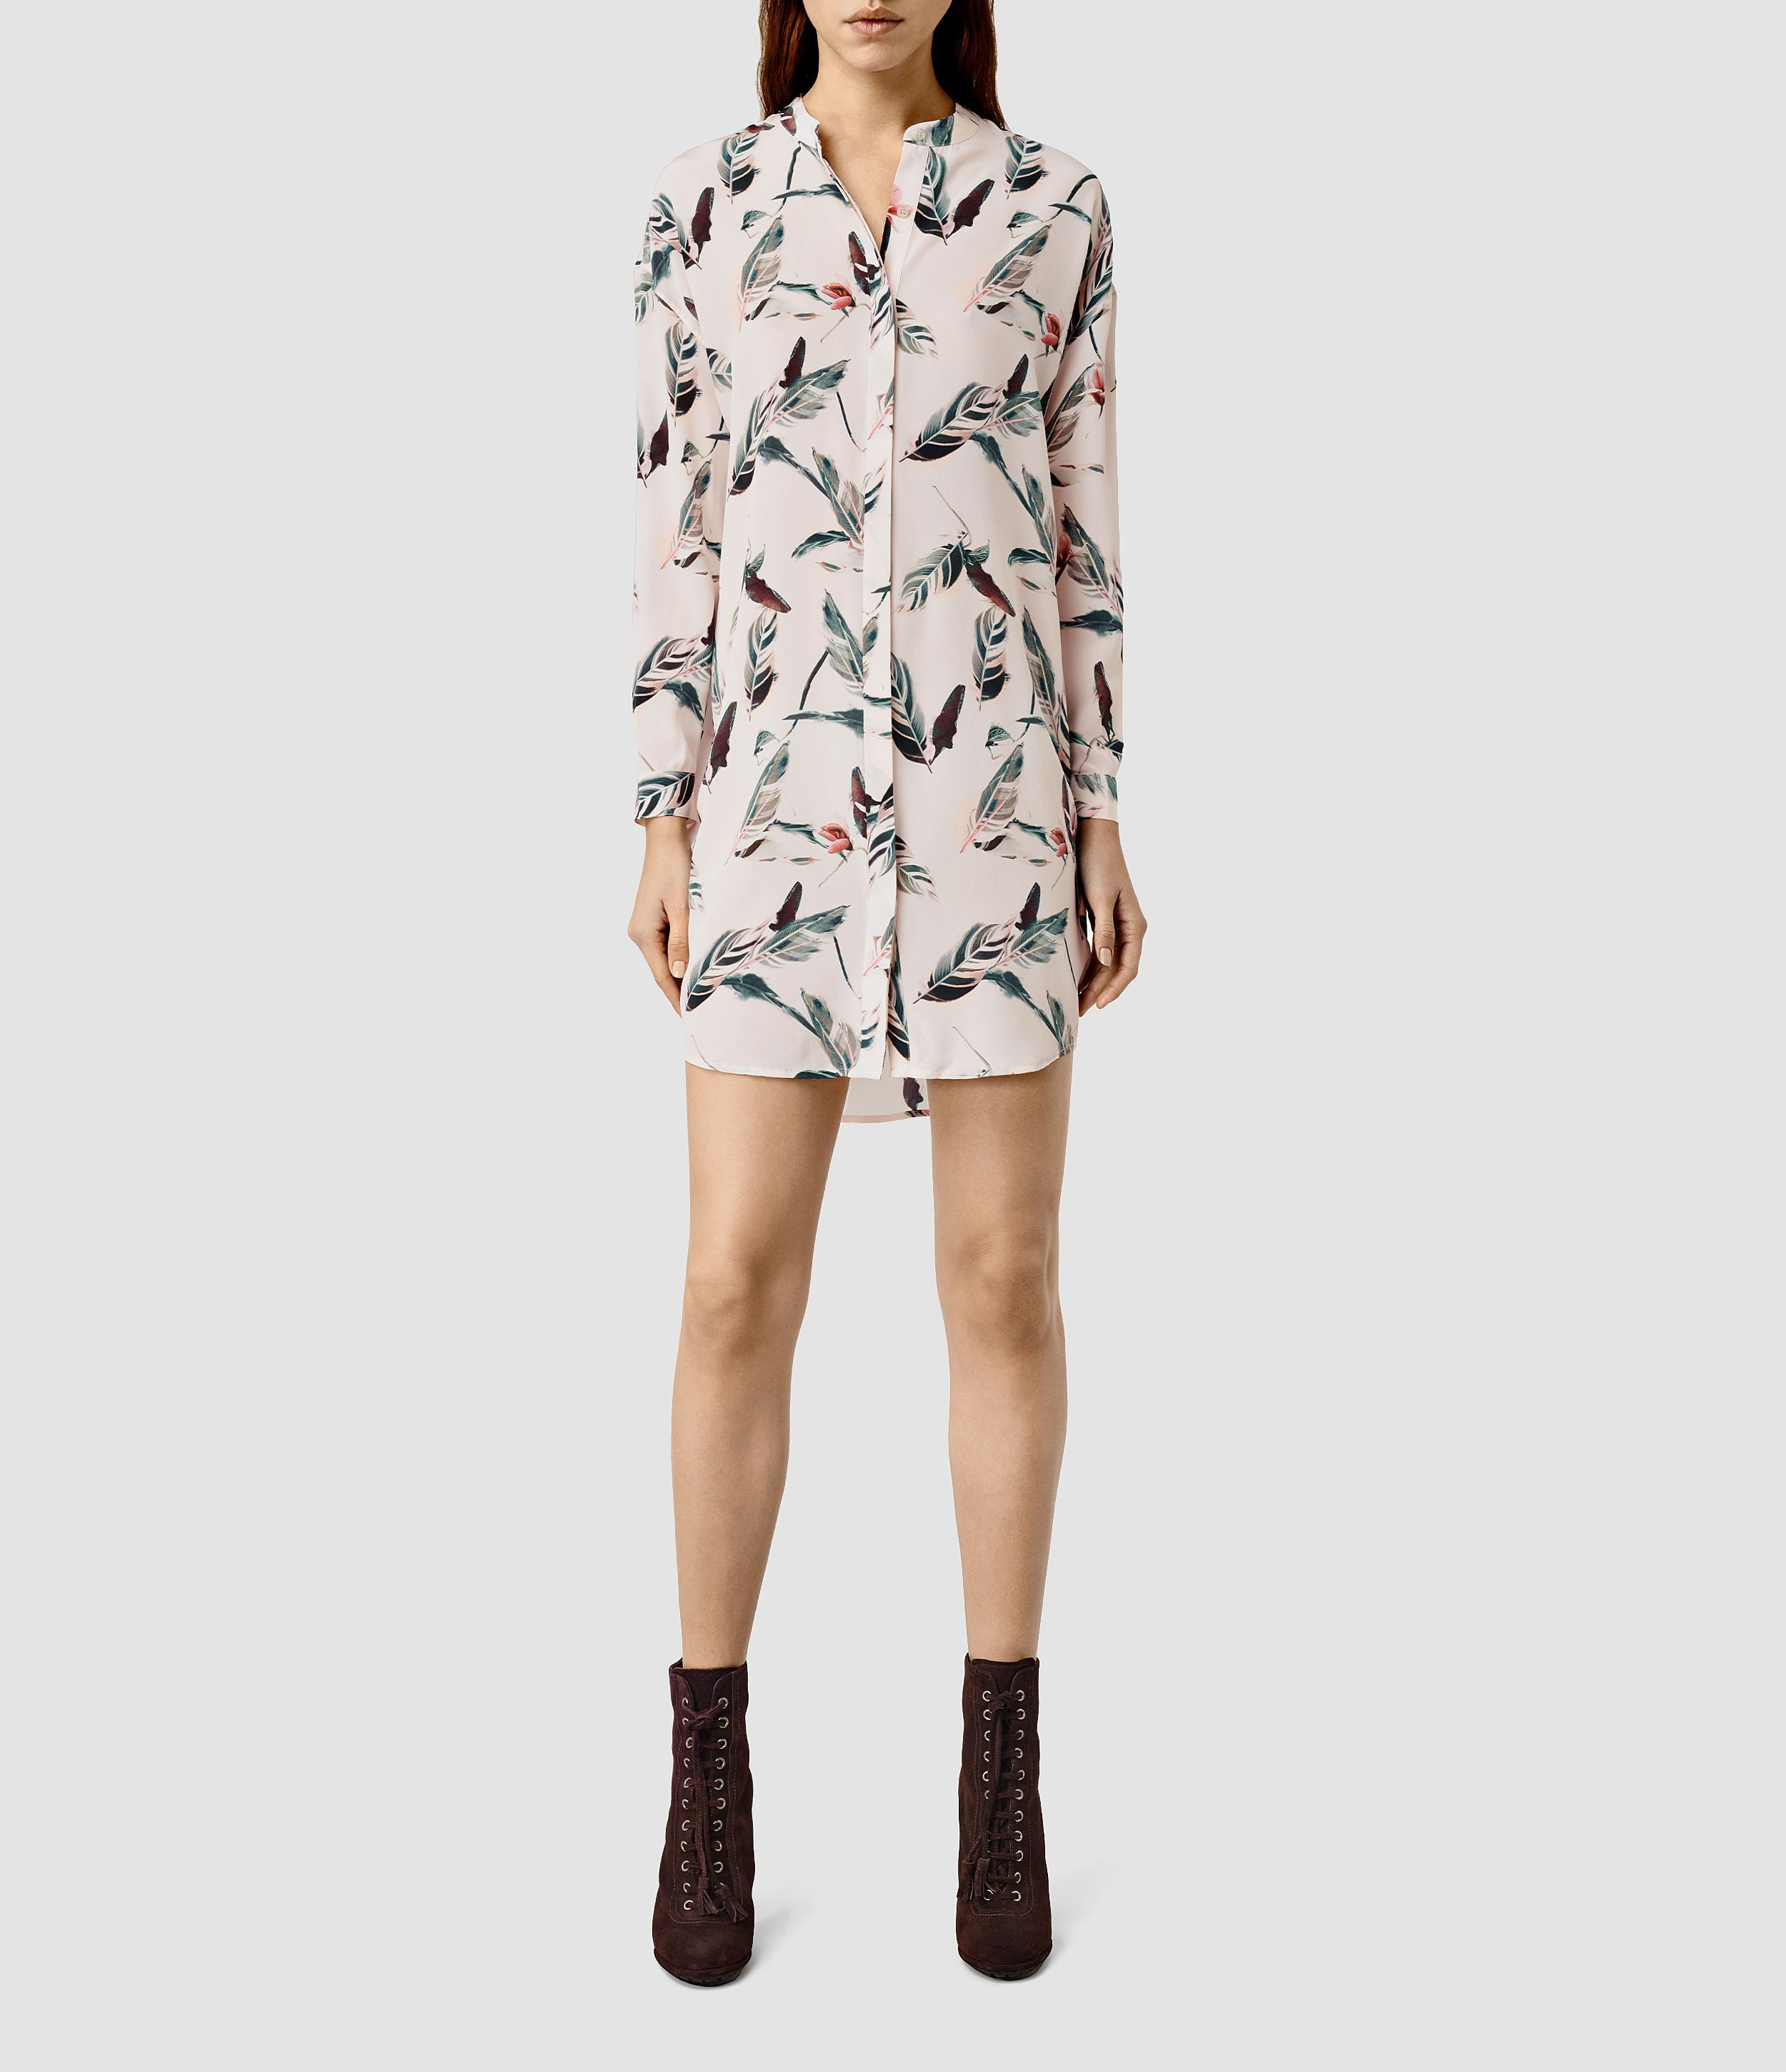 79a999be6f ALLSAINTS UK  Womens Avalon Canna Dress (Chalk White)